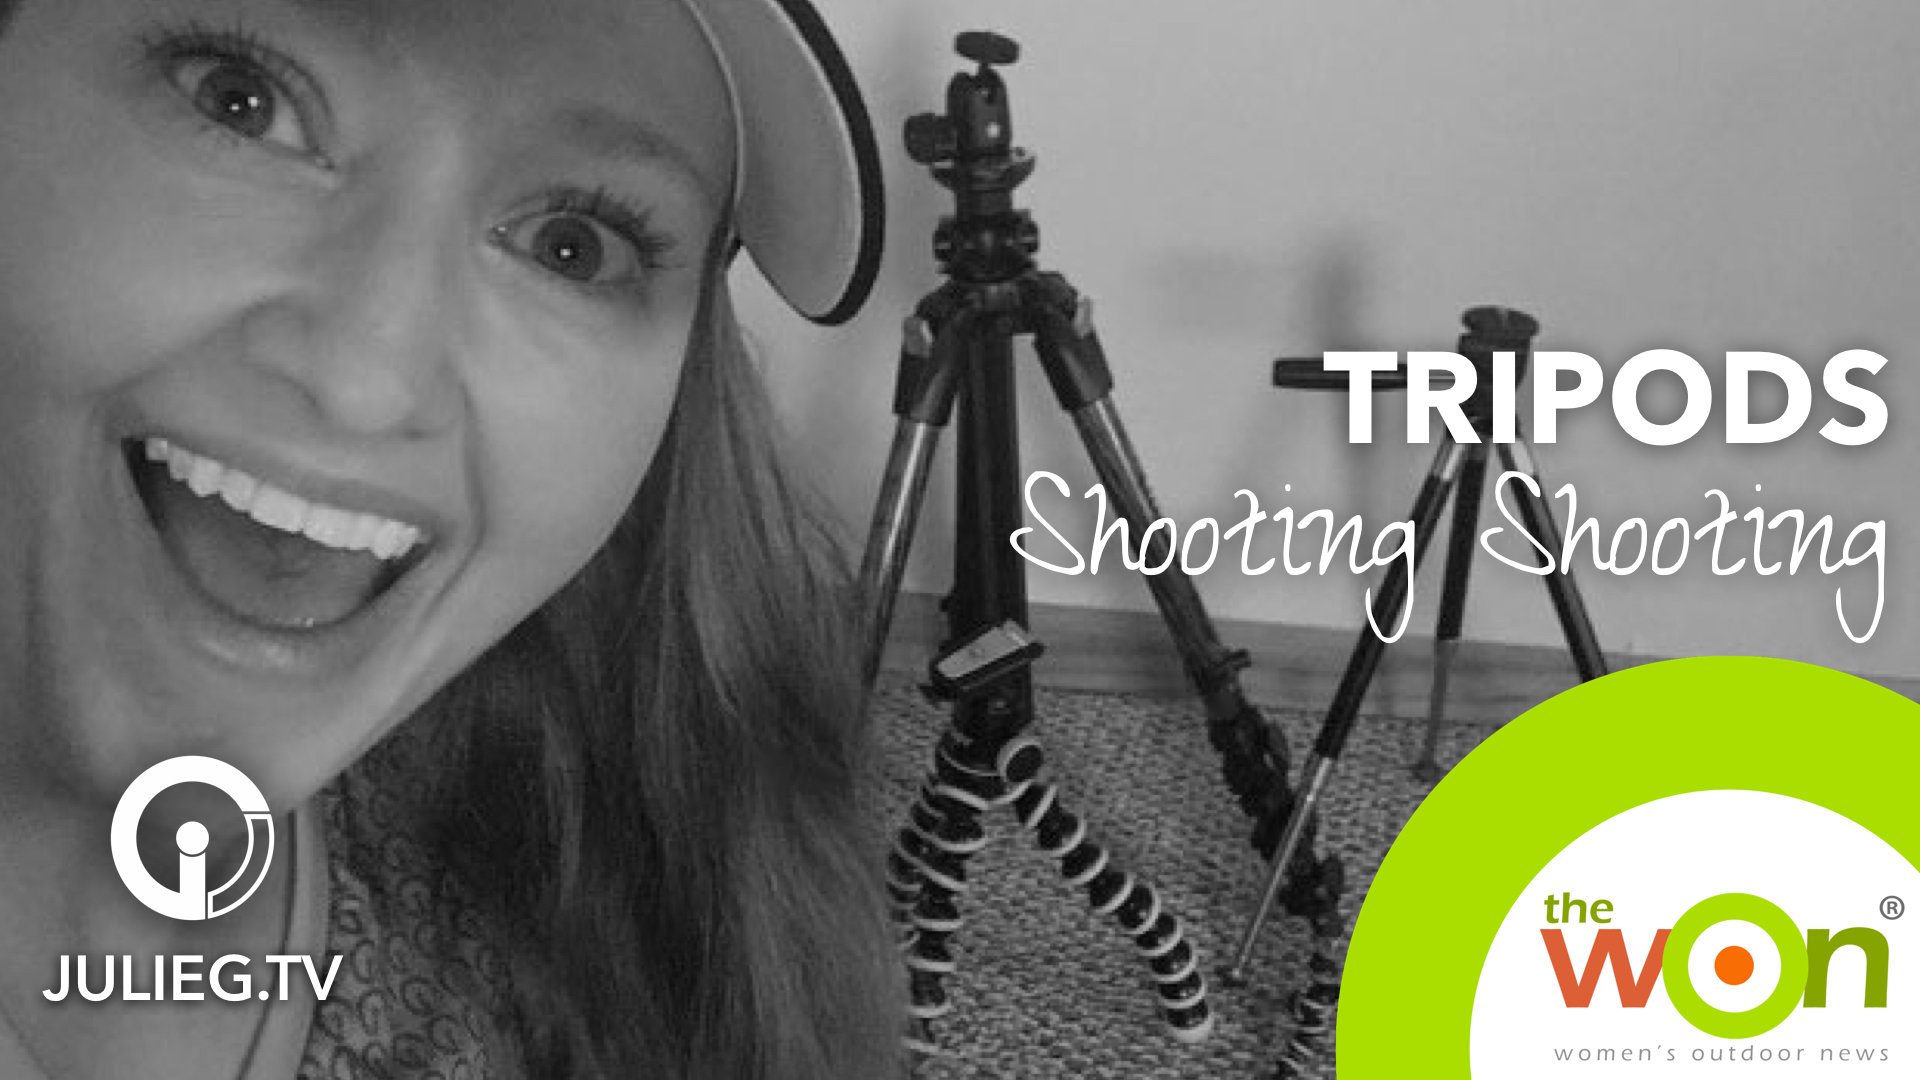 The Tripods I Use to Shoot Shooting| JulieG.TV #sssveda #veda